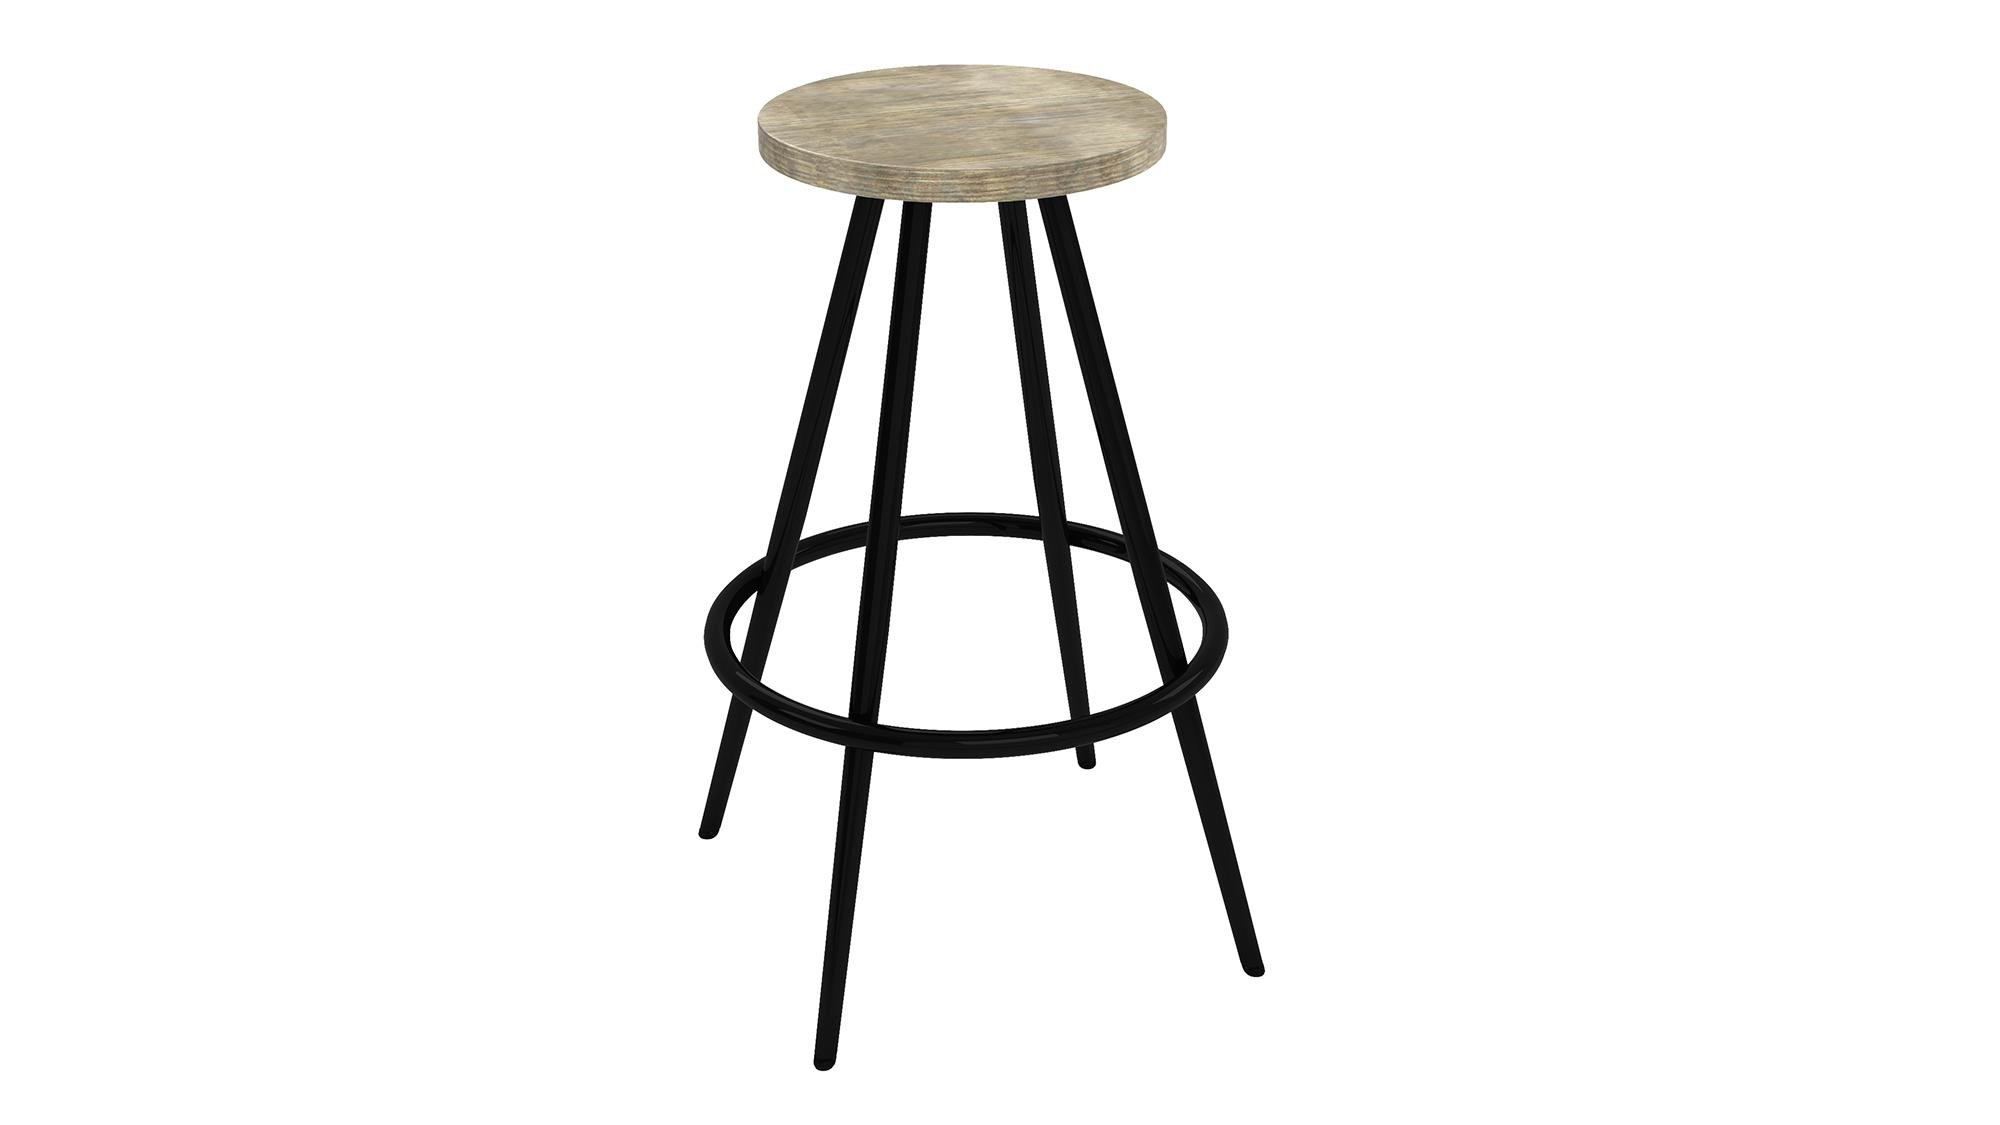 Novogratz Leo Farmhouse 29.5-Inch Bar Stool with Footrest, Rustic and Modern Style, Black Metal Frame with Grey Wood Seat